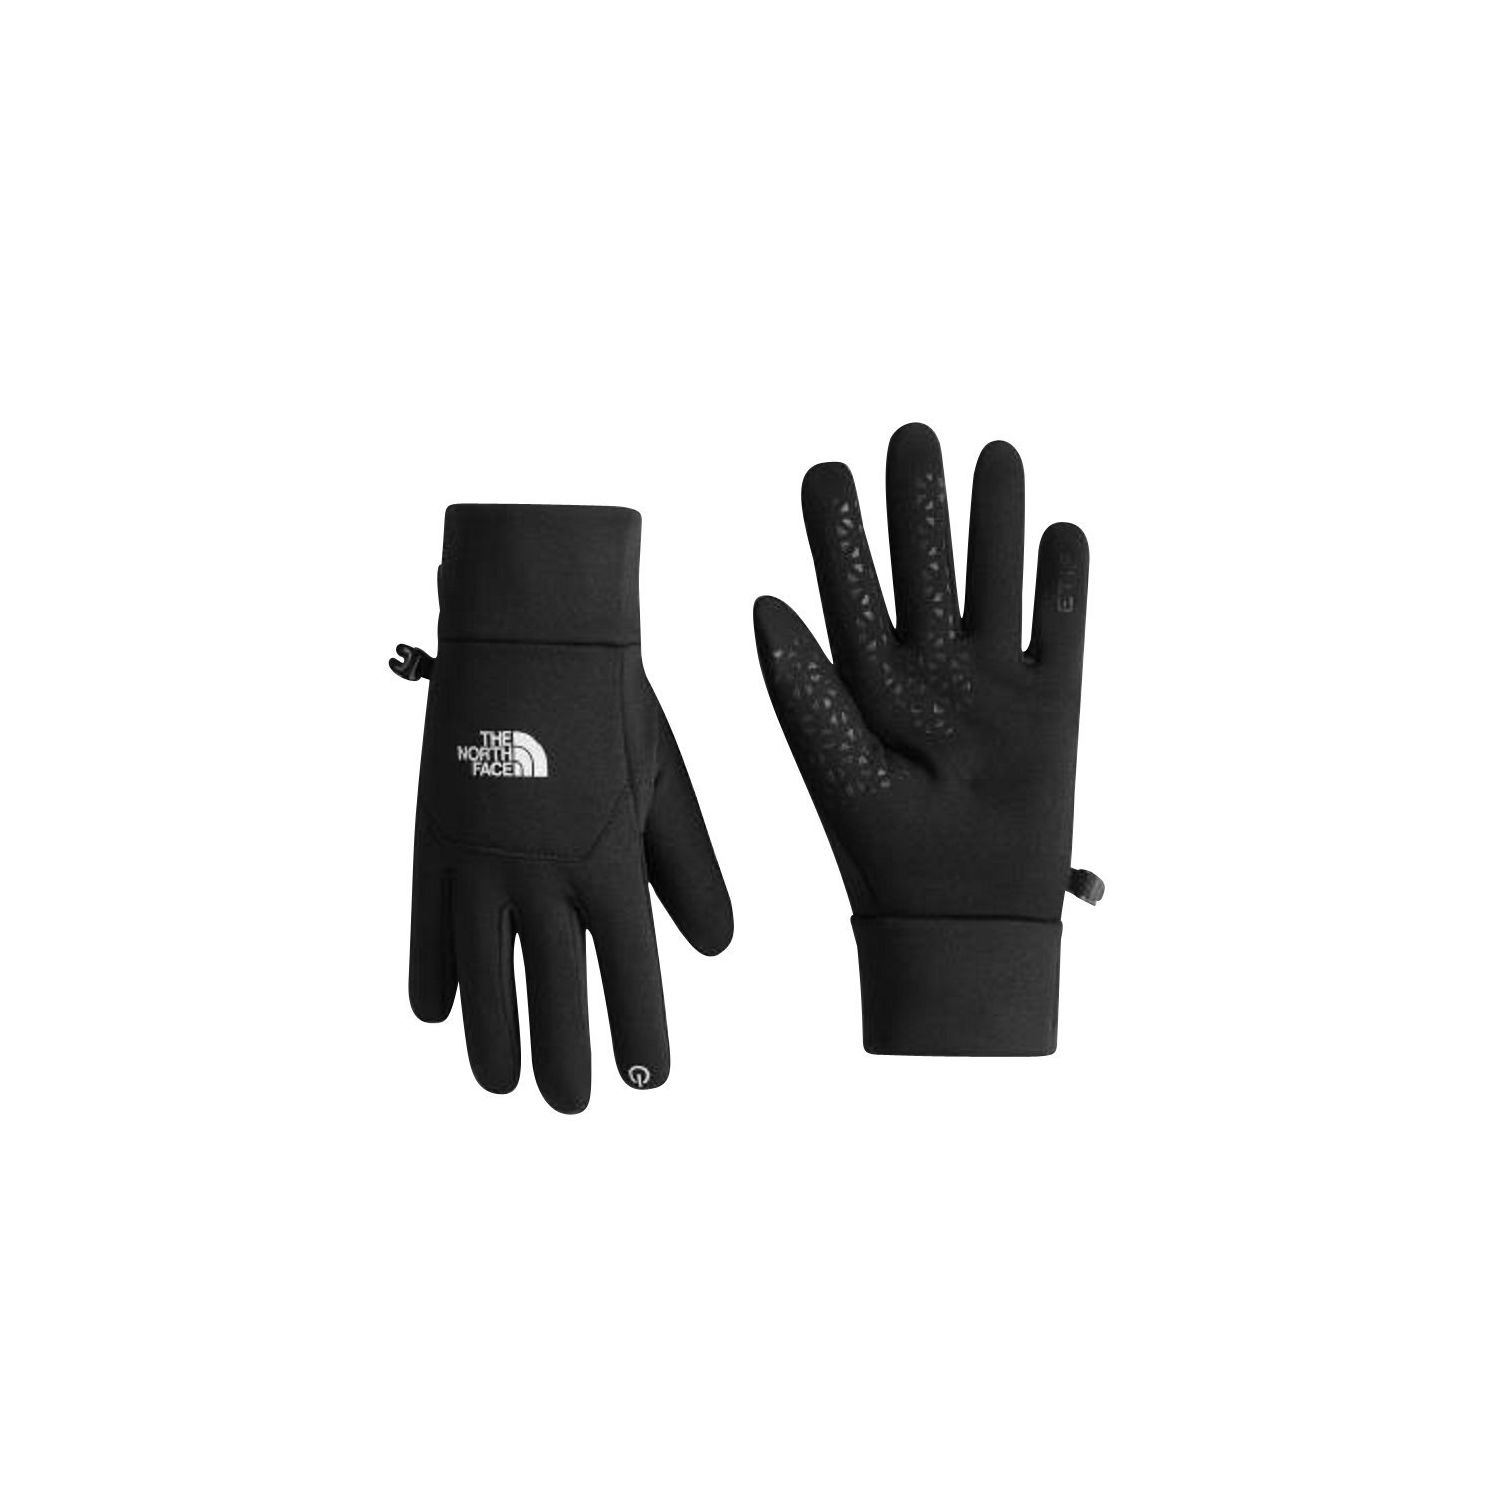 d7bb80dc08718 THE NORTH FACE- Gants Etip - Noir